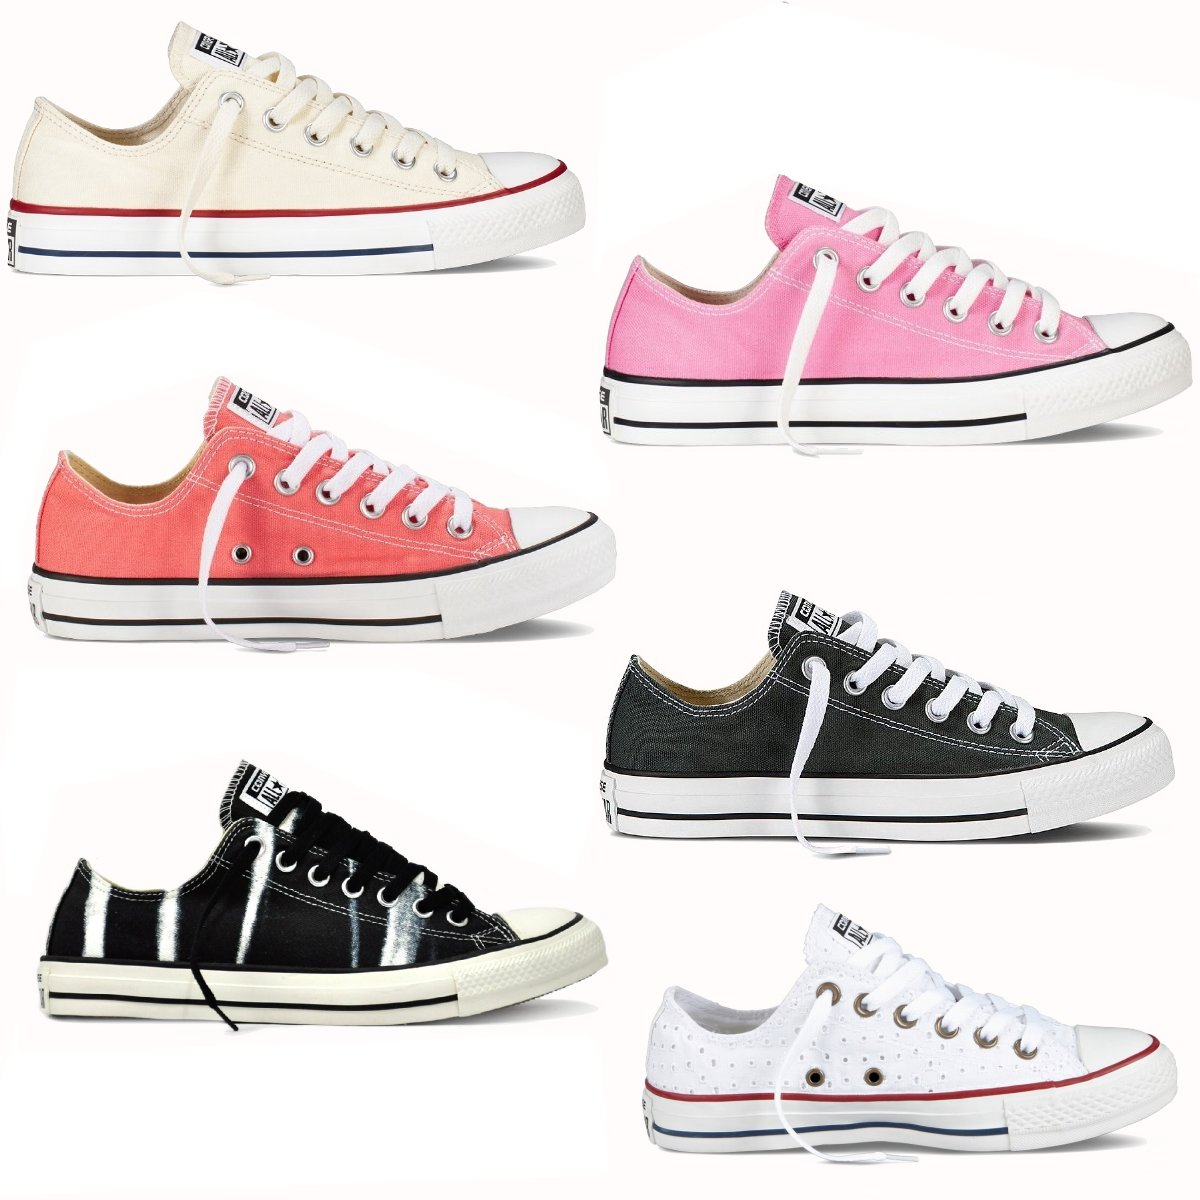 converse chucks all star ox schuhe sneaker turnschuhe. Black Bedroom Furniture Sets. Home Design Ideas